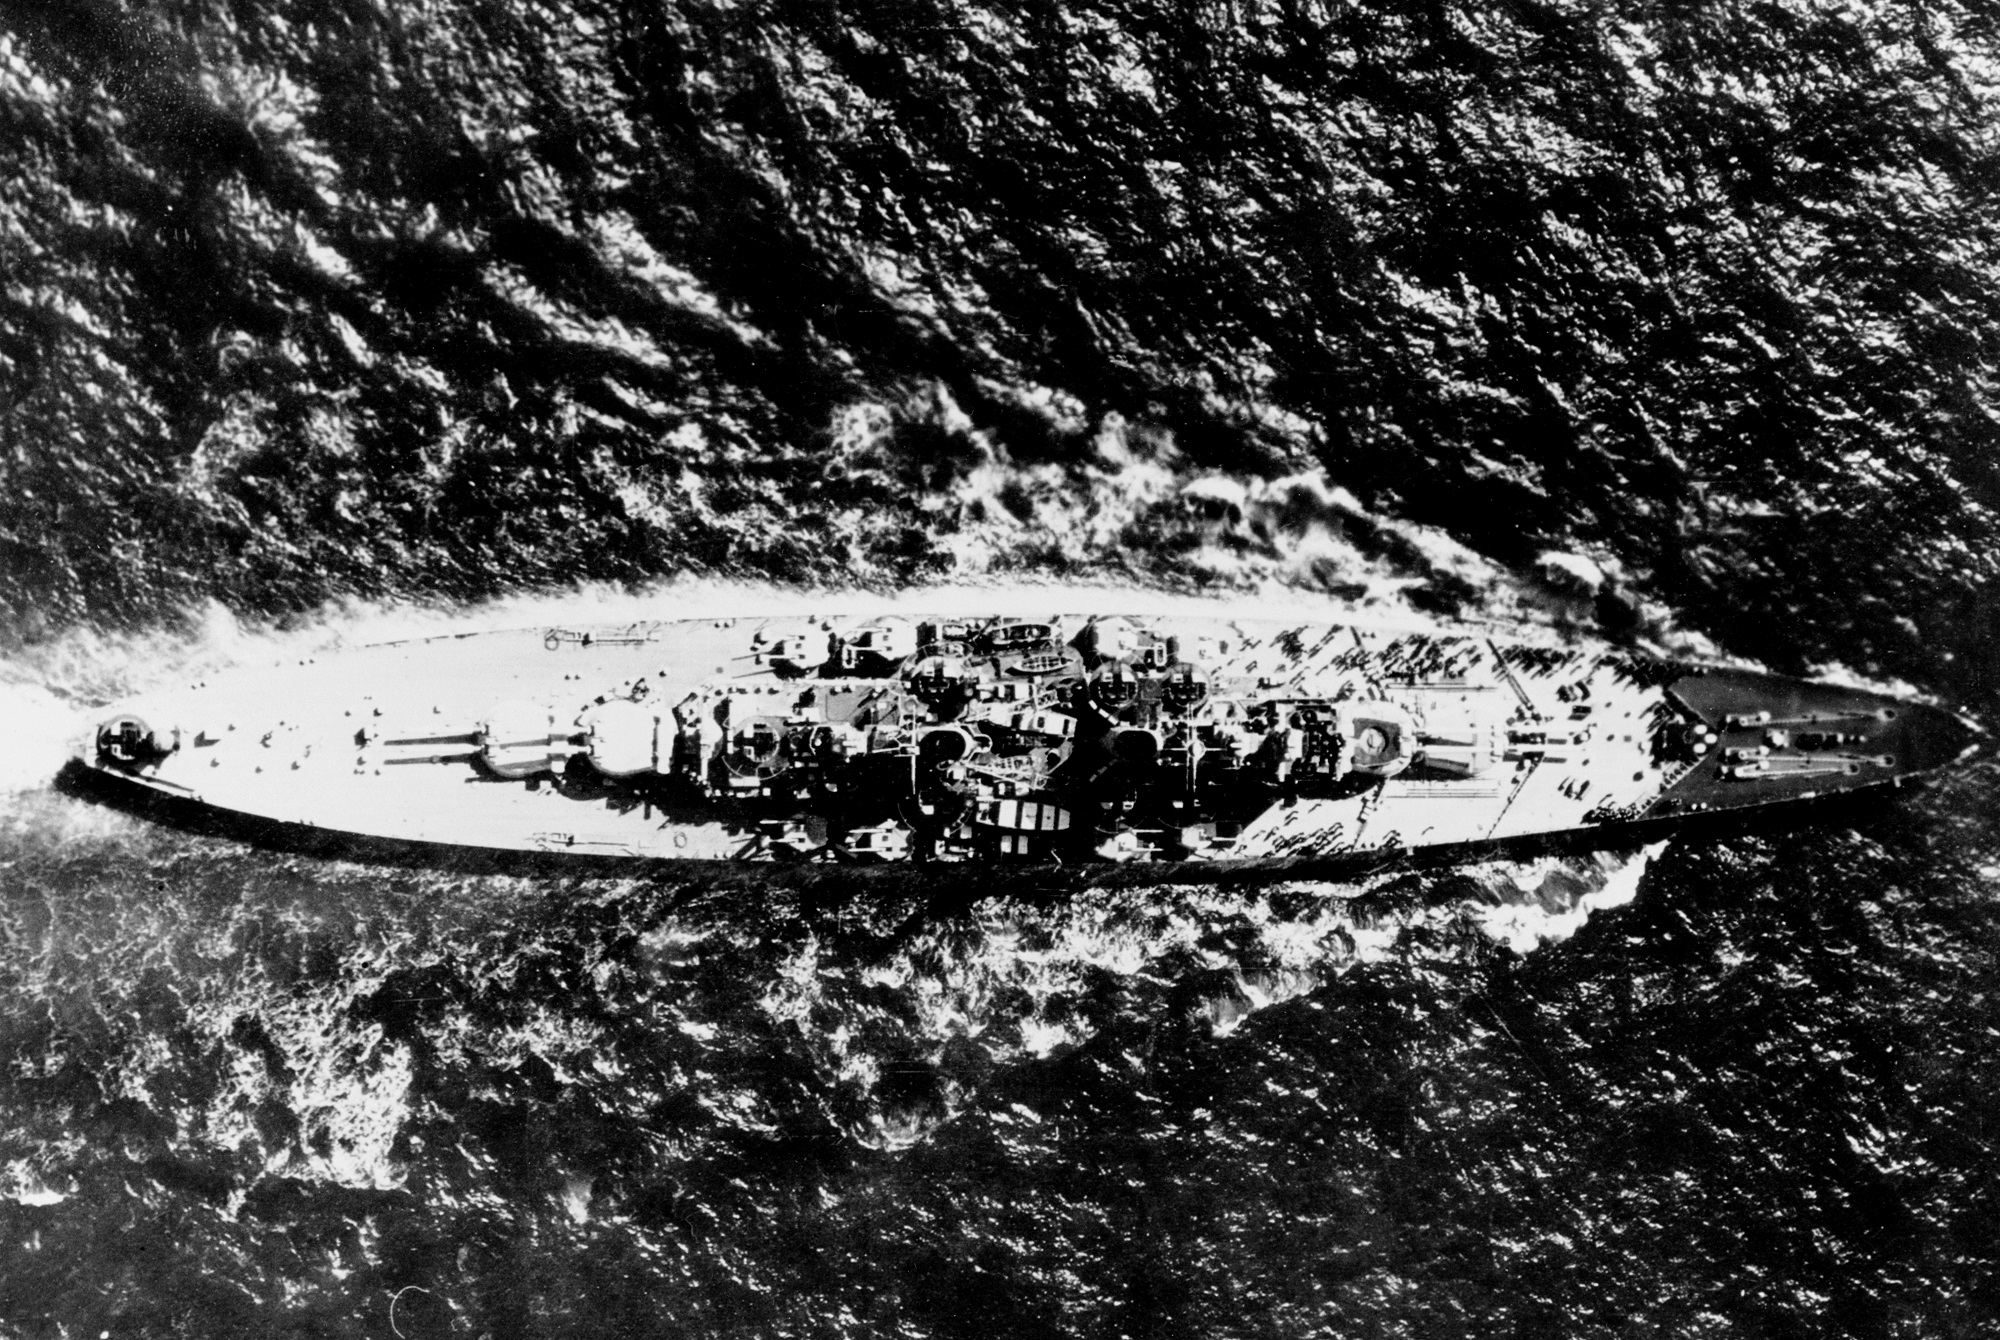 Last Battleship: The Royal Navy's Final Battleship Was a Real Navy-Killer